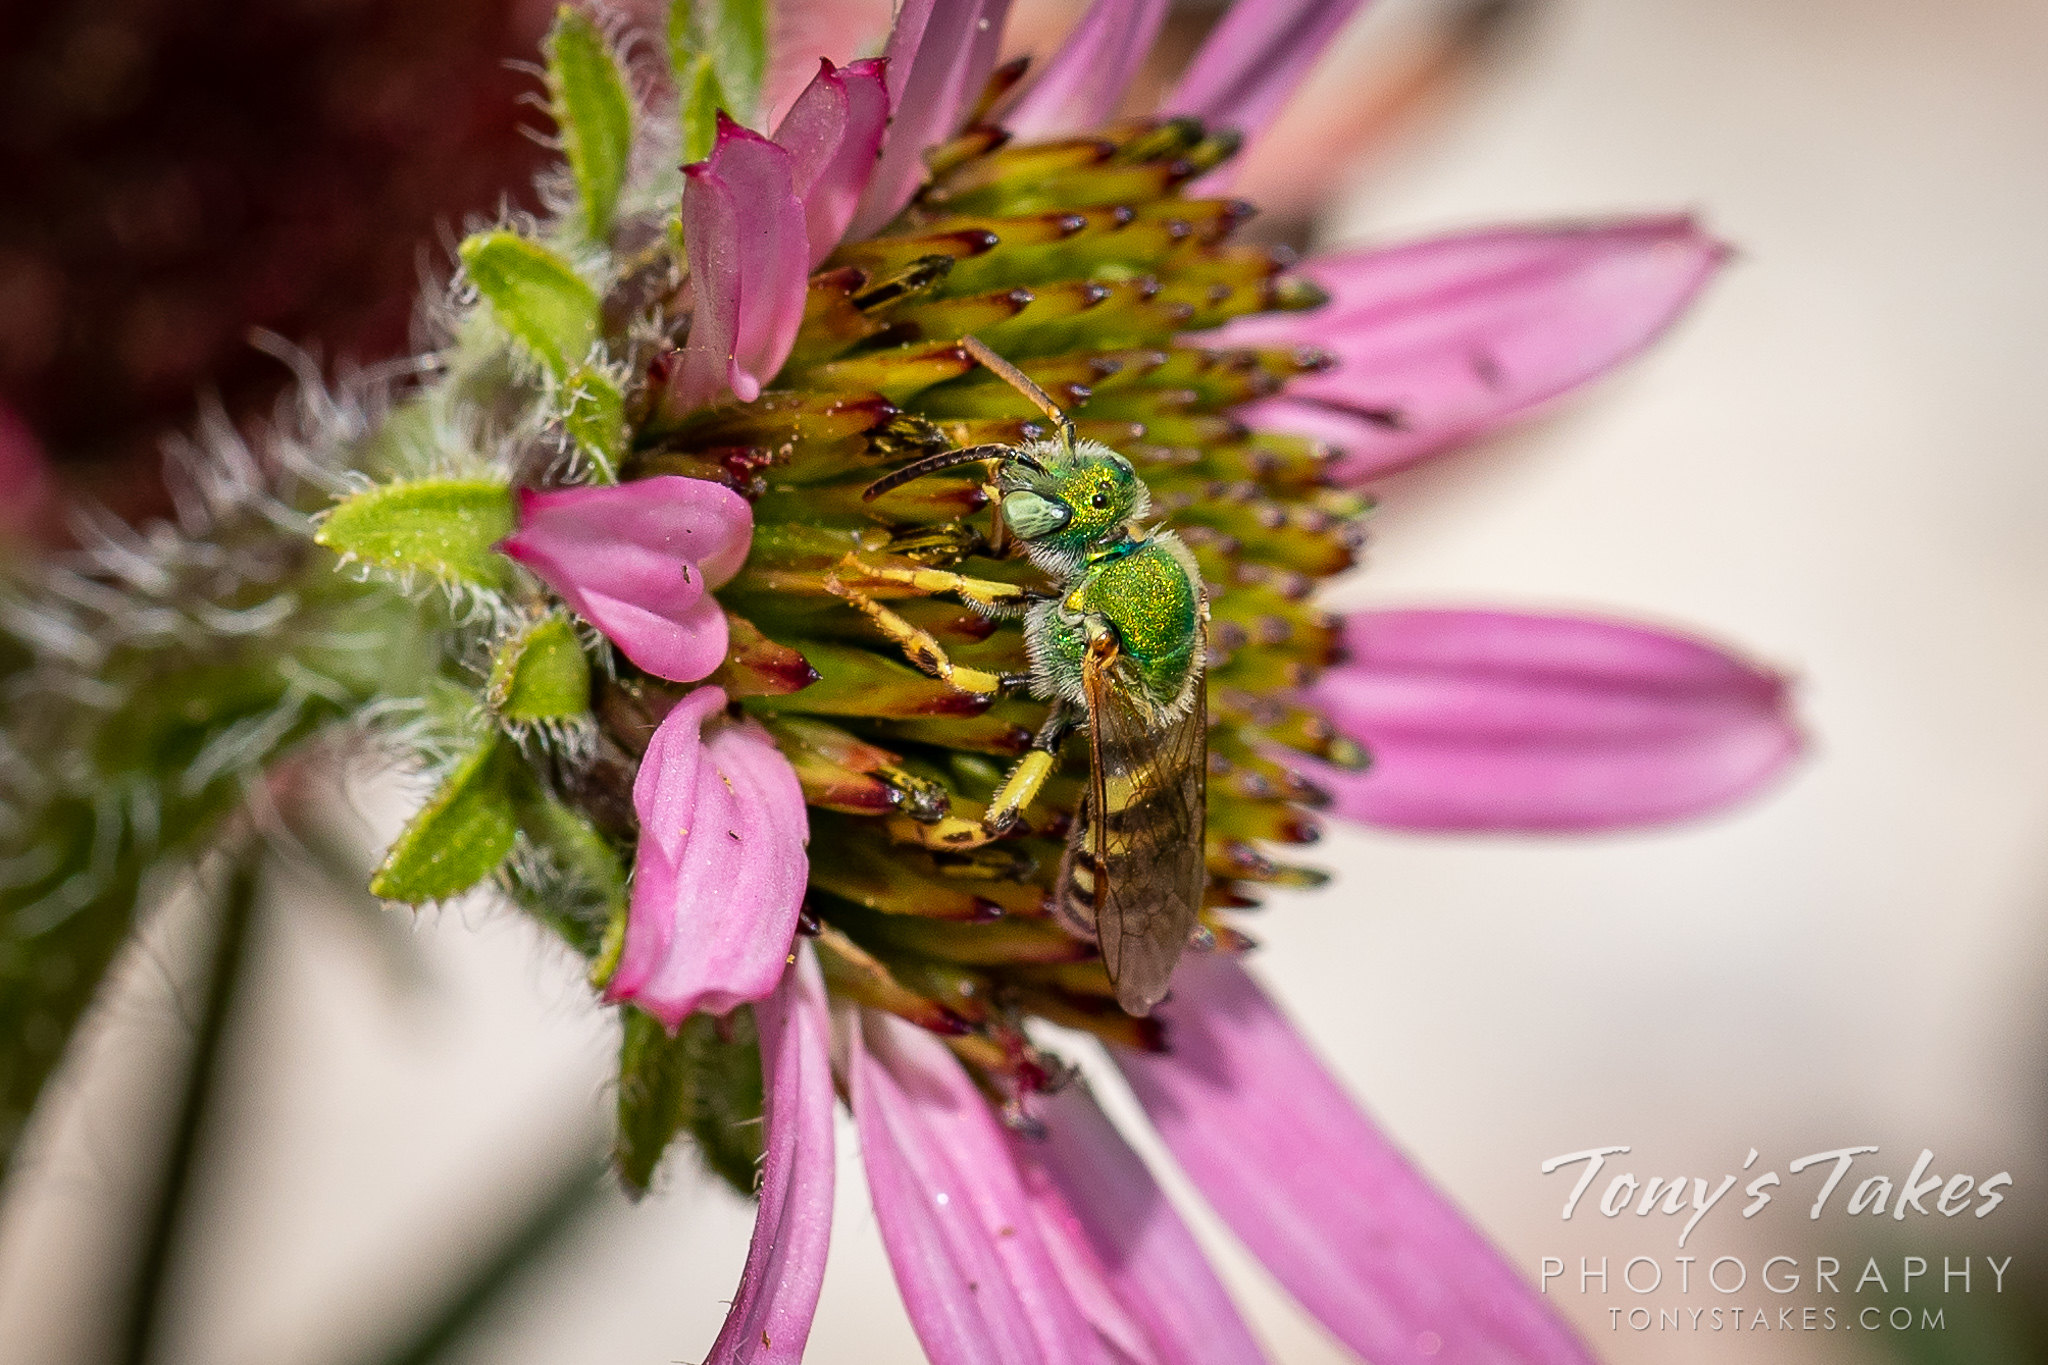 Sweat bee up close and personal